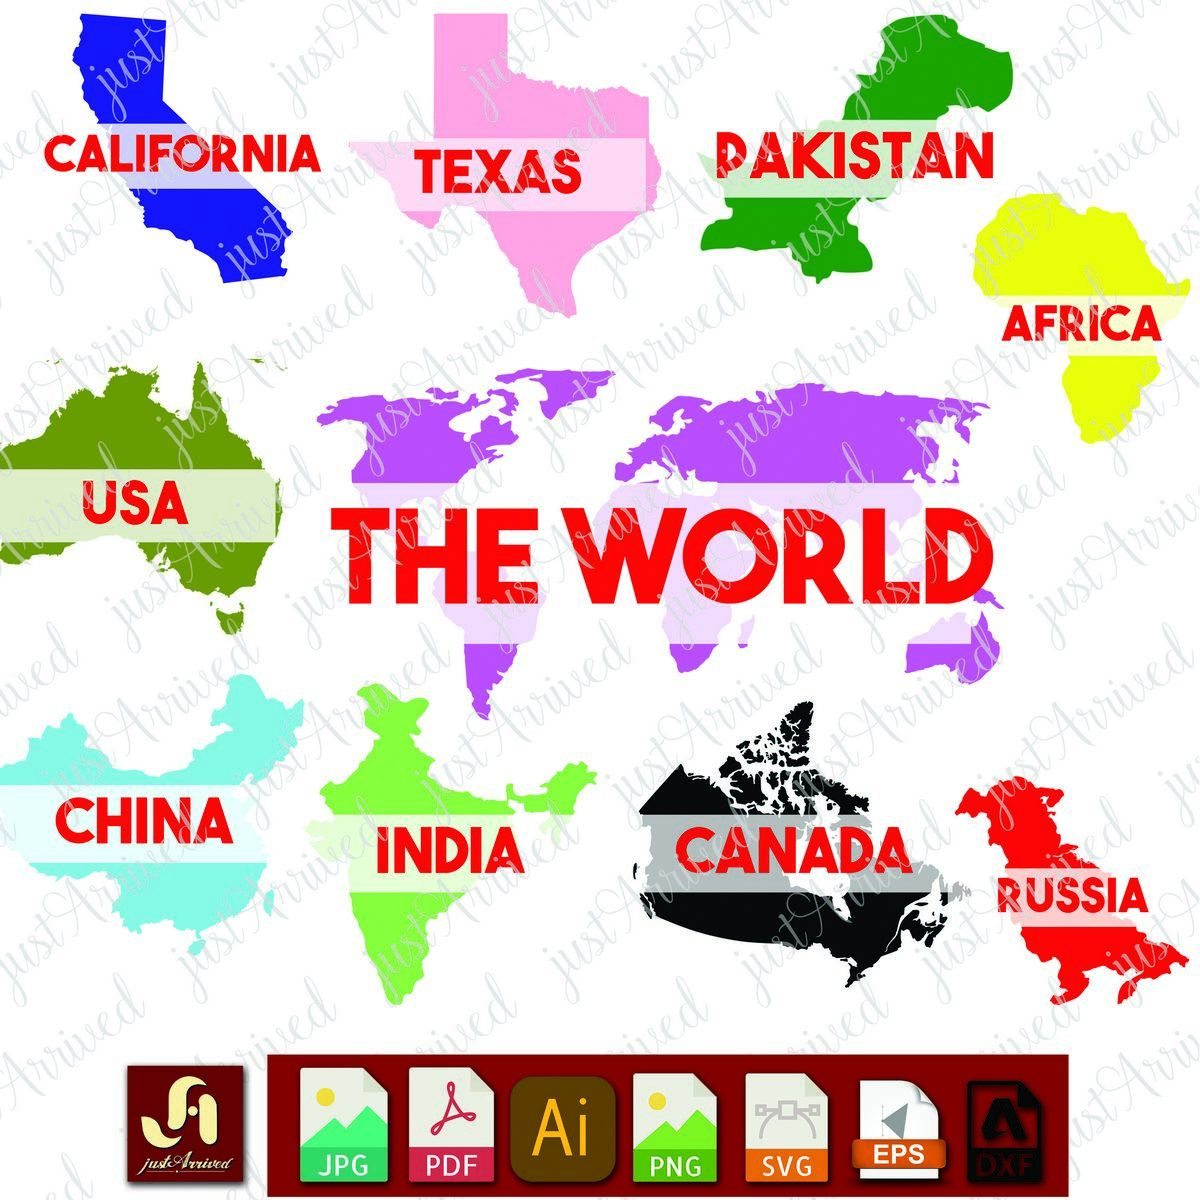 World map svg maps for students svg dxf png eps and pdf files world map svg maps for students svg dxf png eps and pdf files for silhouette studio texas monogram svg geography classroom teacher gumiabroncs Image collections